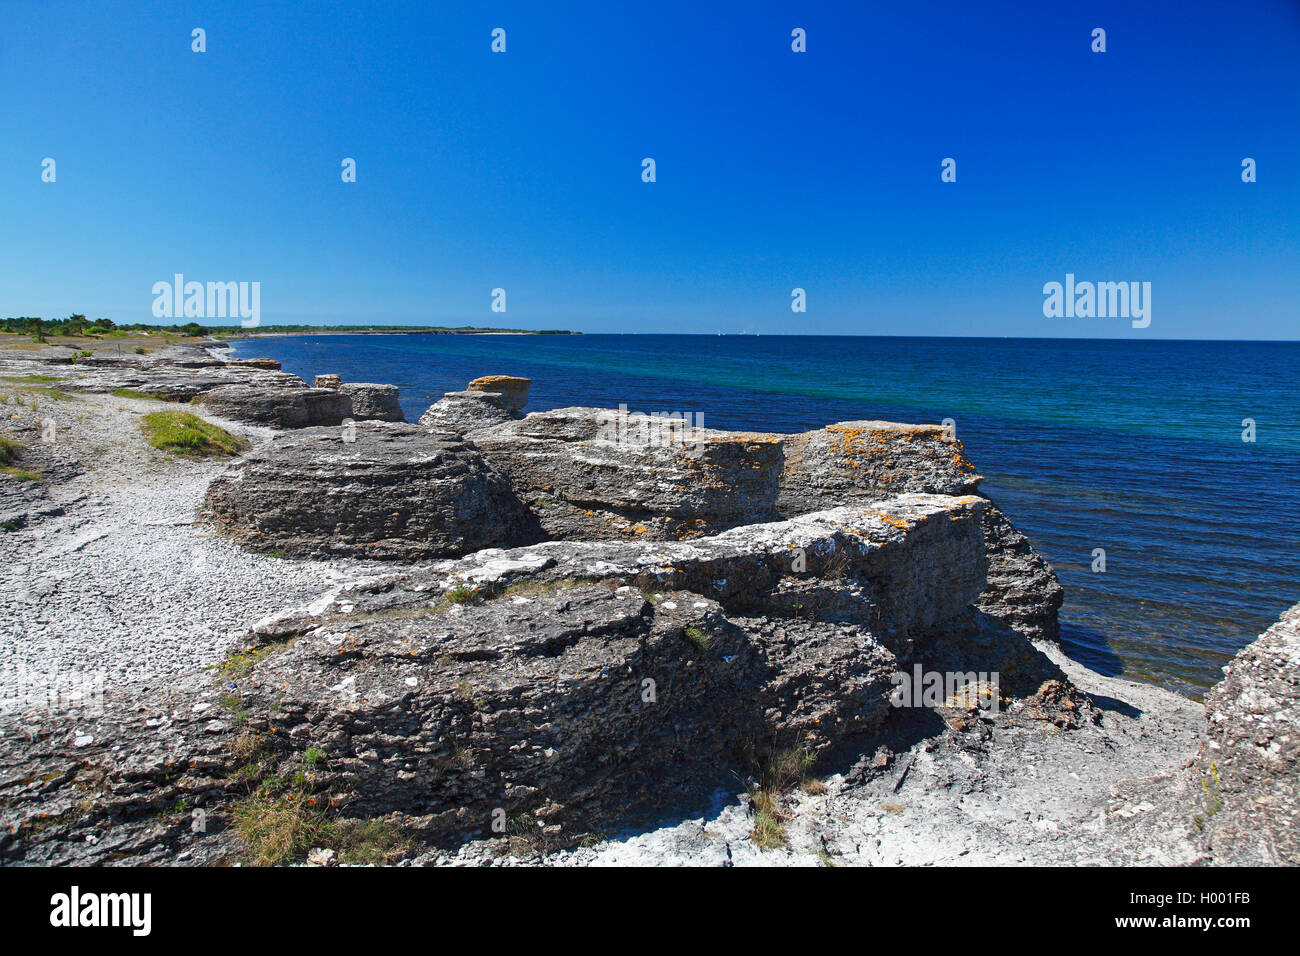 Kalksteinsaeulen an der Kueste bei Byrums Raukar, Schweden, Oeland, Byrums Raukar | chalkstone pillars at the coast - Stock Image